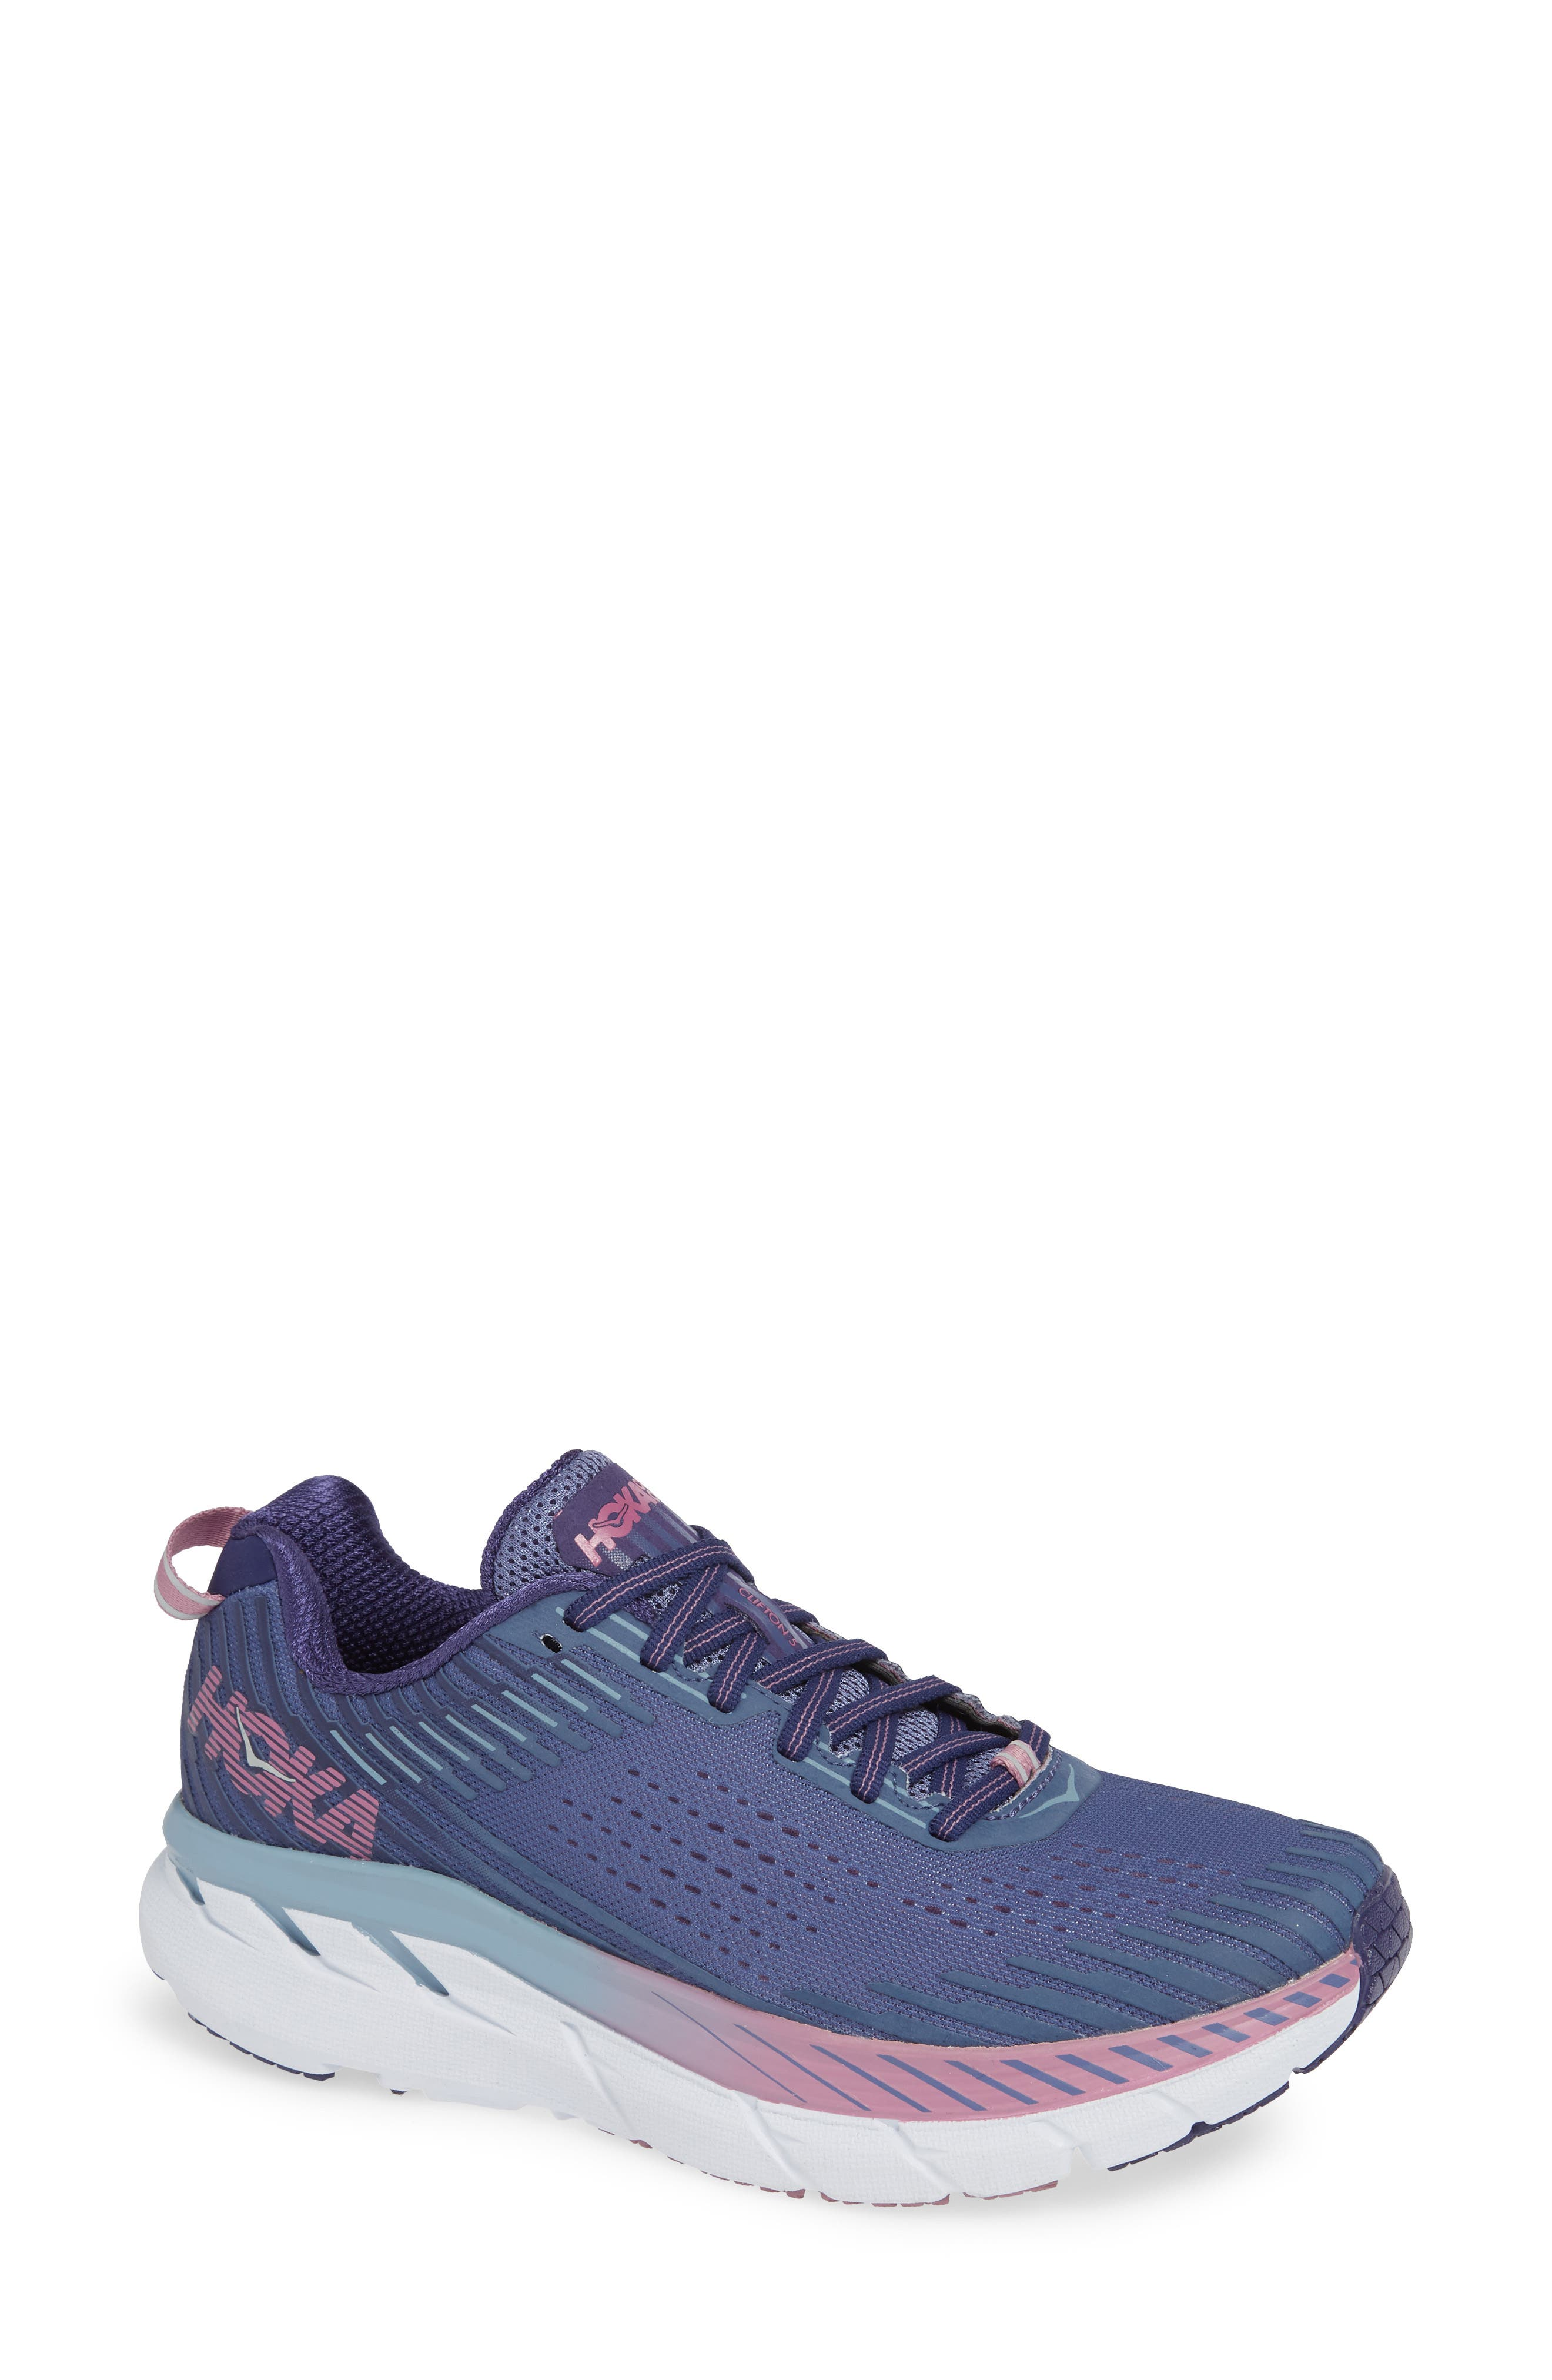 HOKA ONE ONE Clifton 5 Running Shoe in Marlin/ Blue Ribbon